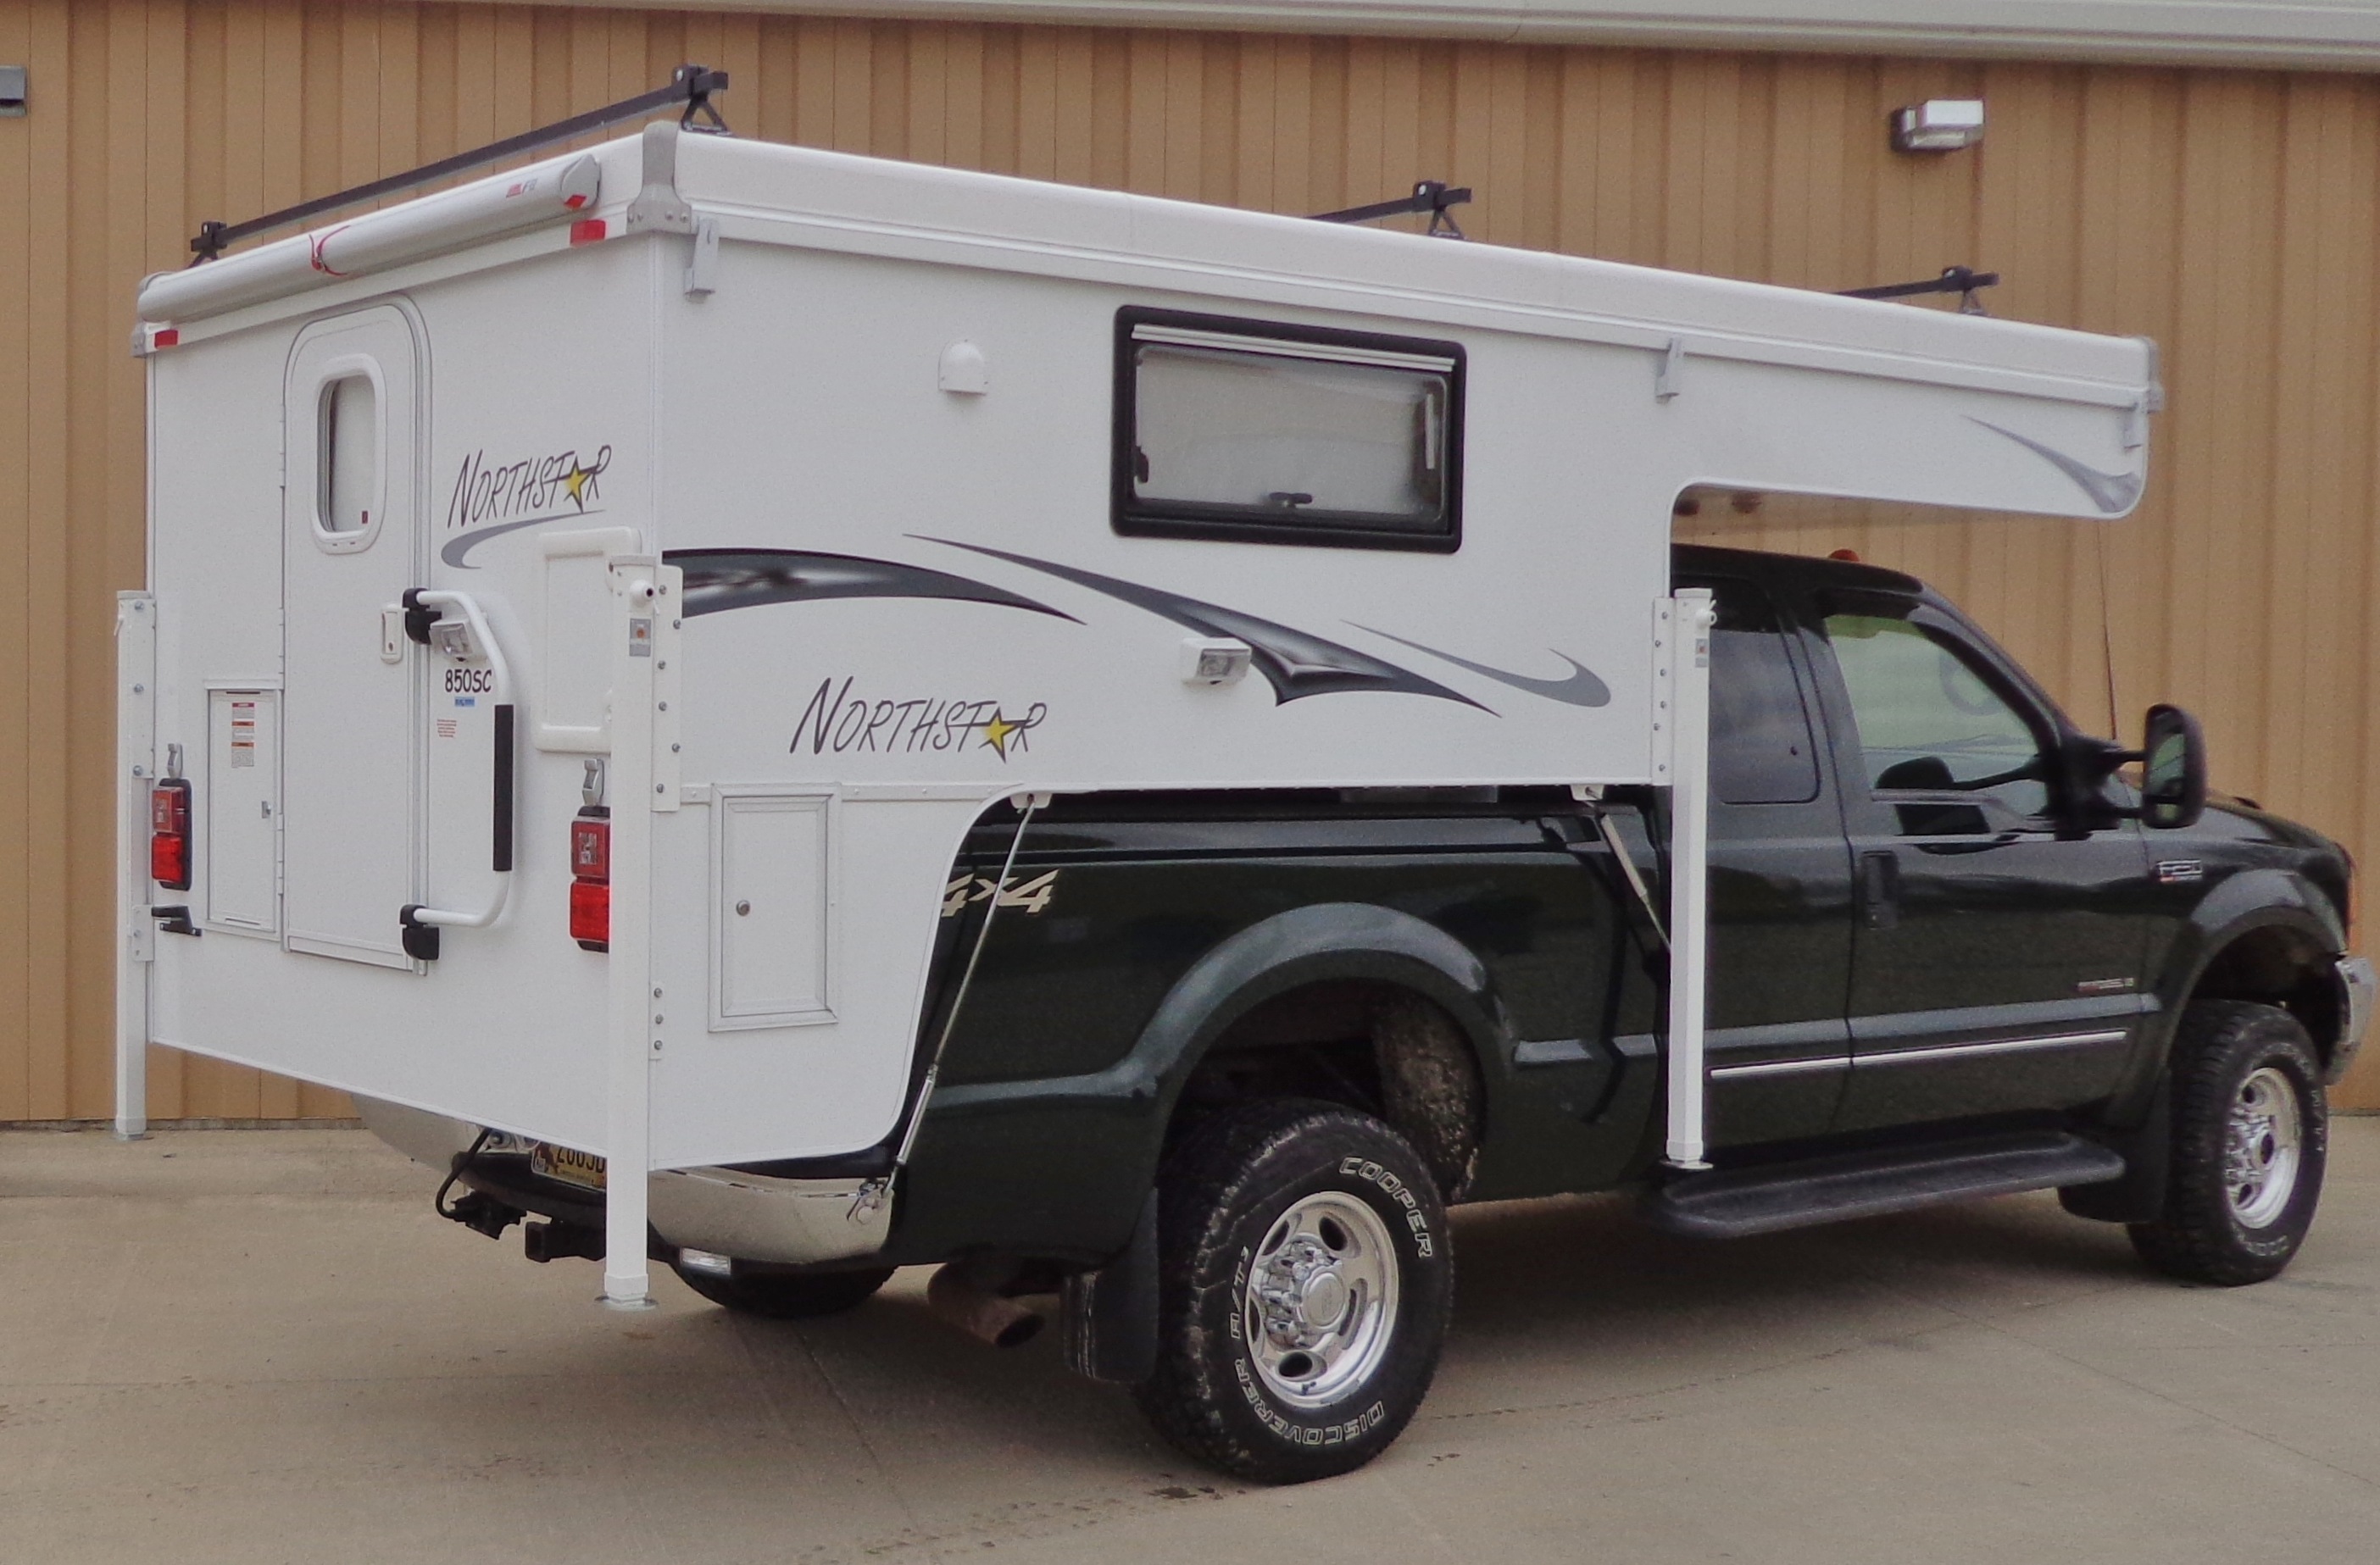 Top 8 Pop Up Truck Campers For 3 4 Ton Trucks Truck Camper Adventure